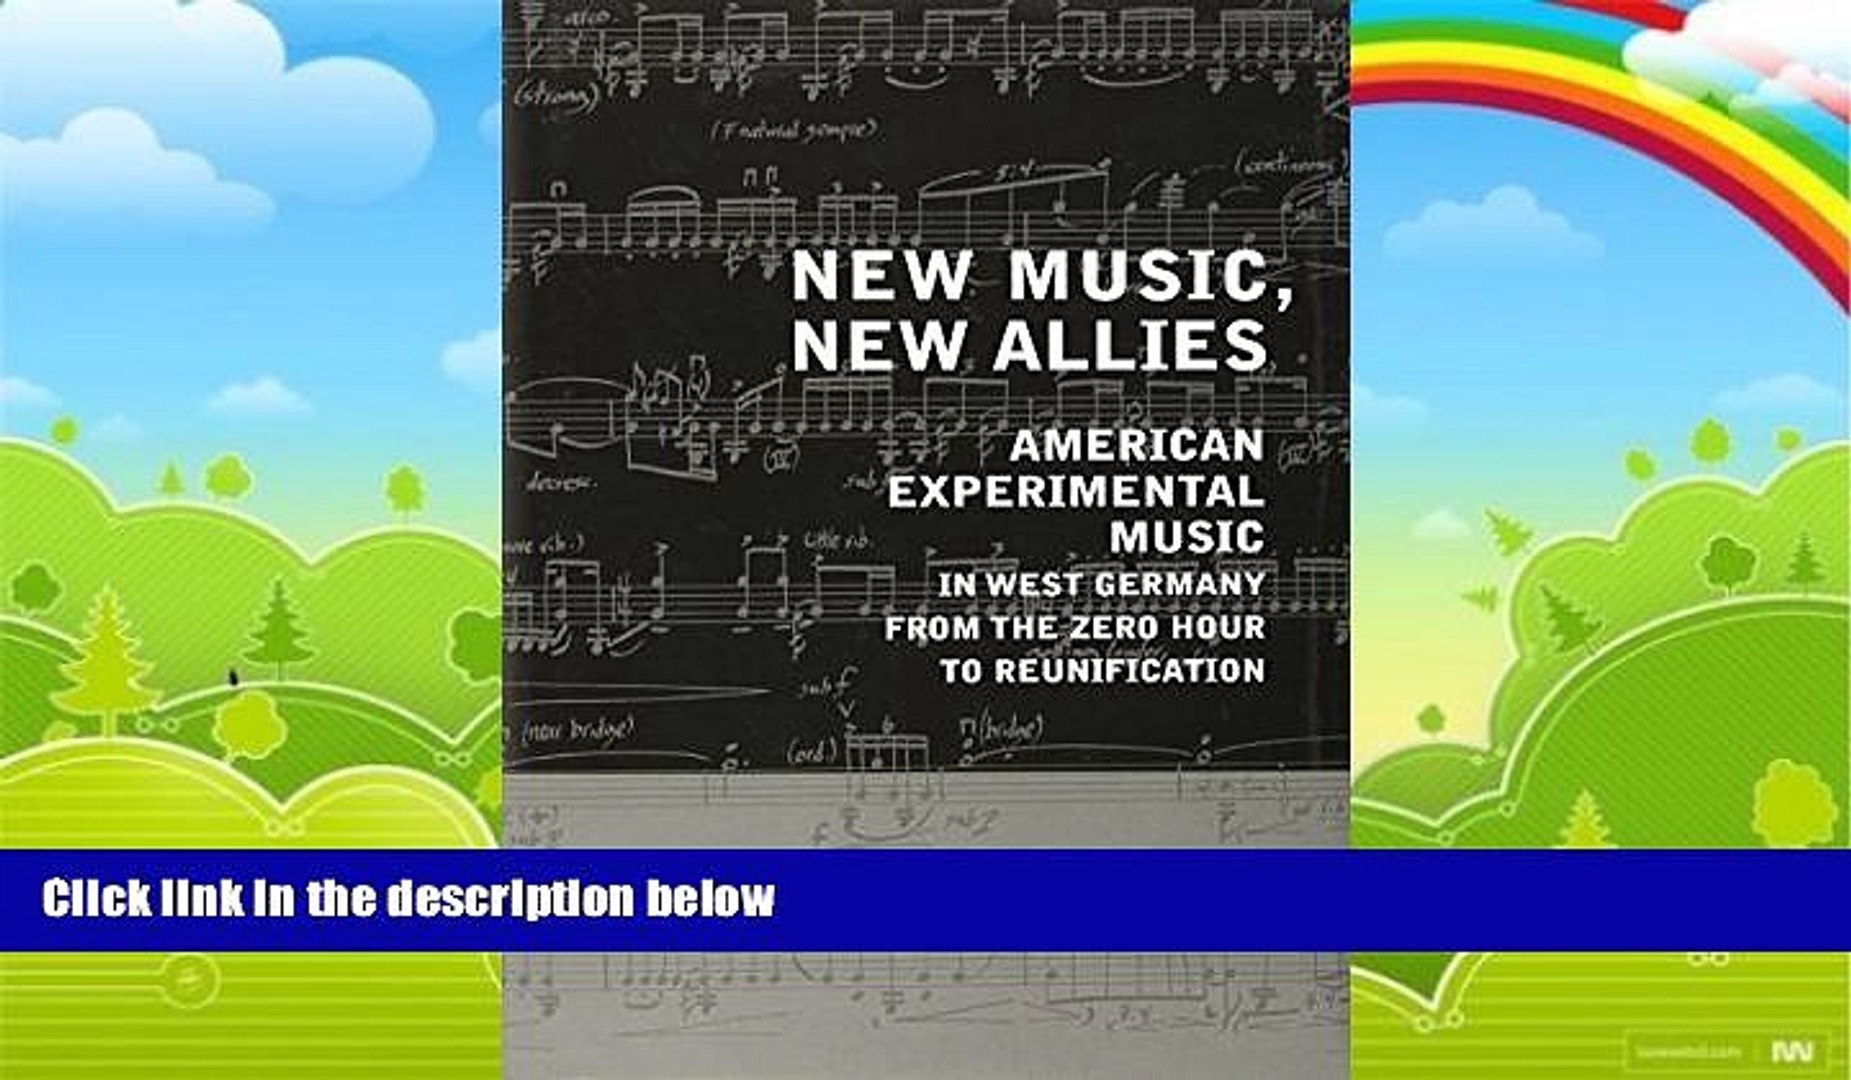 Best Price New Music, New Allies: American Experimental Music in West Germany from the Zero Hour